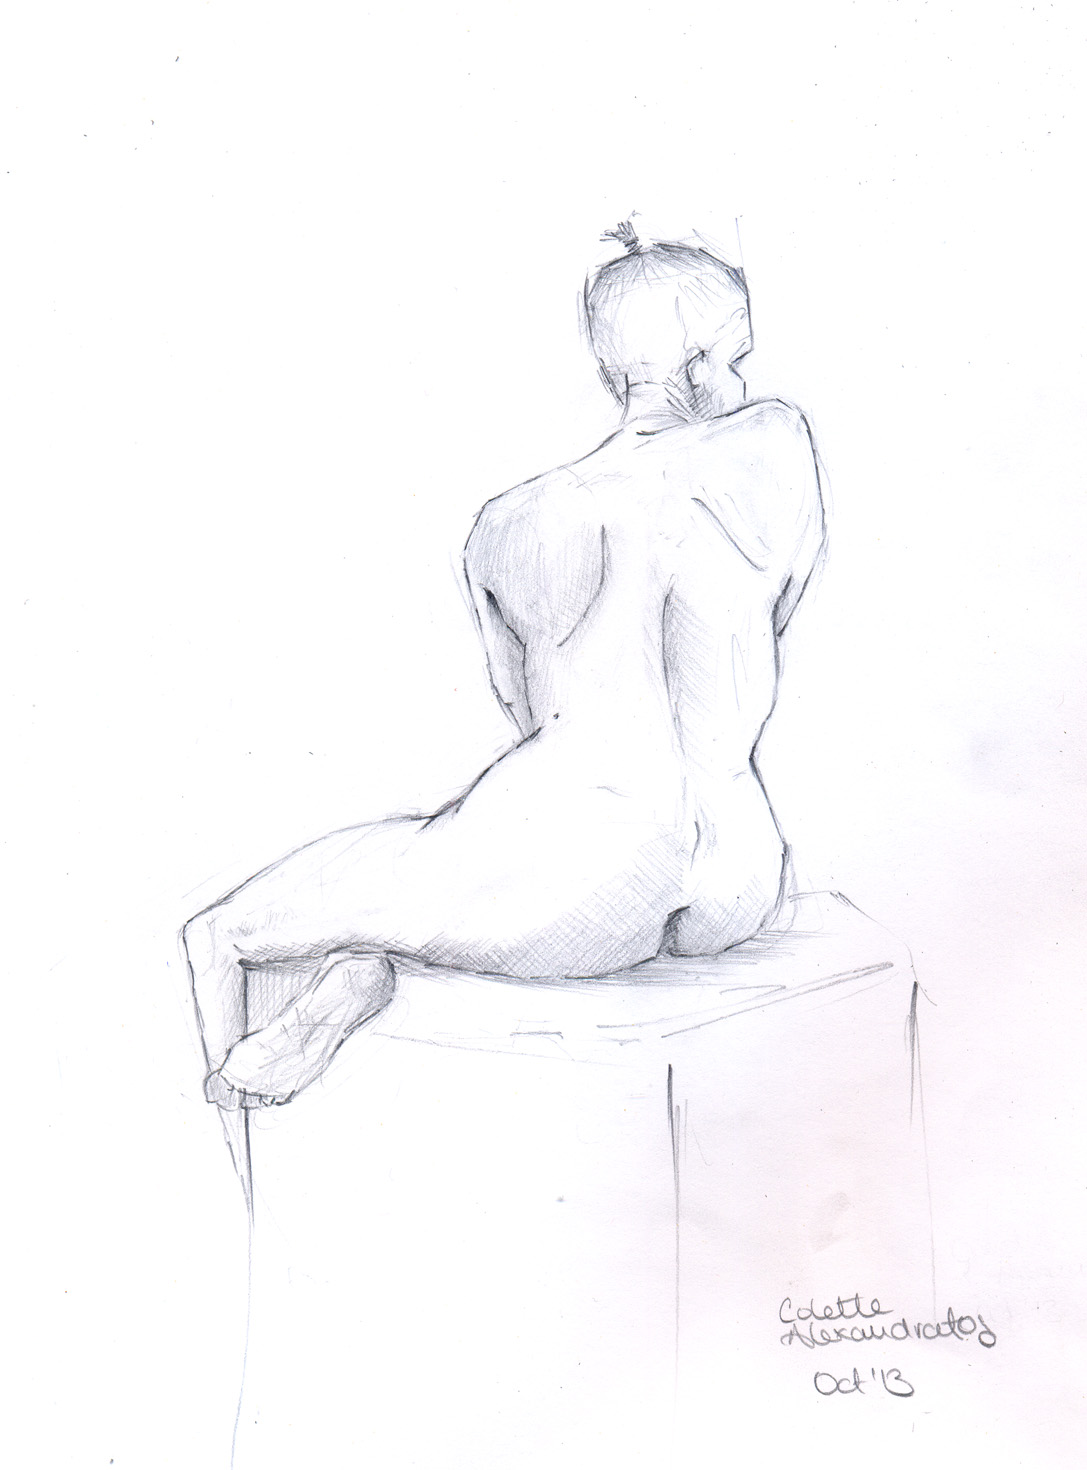 Life drawing and observational